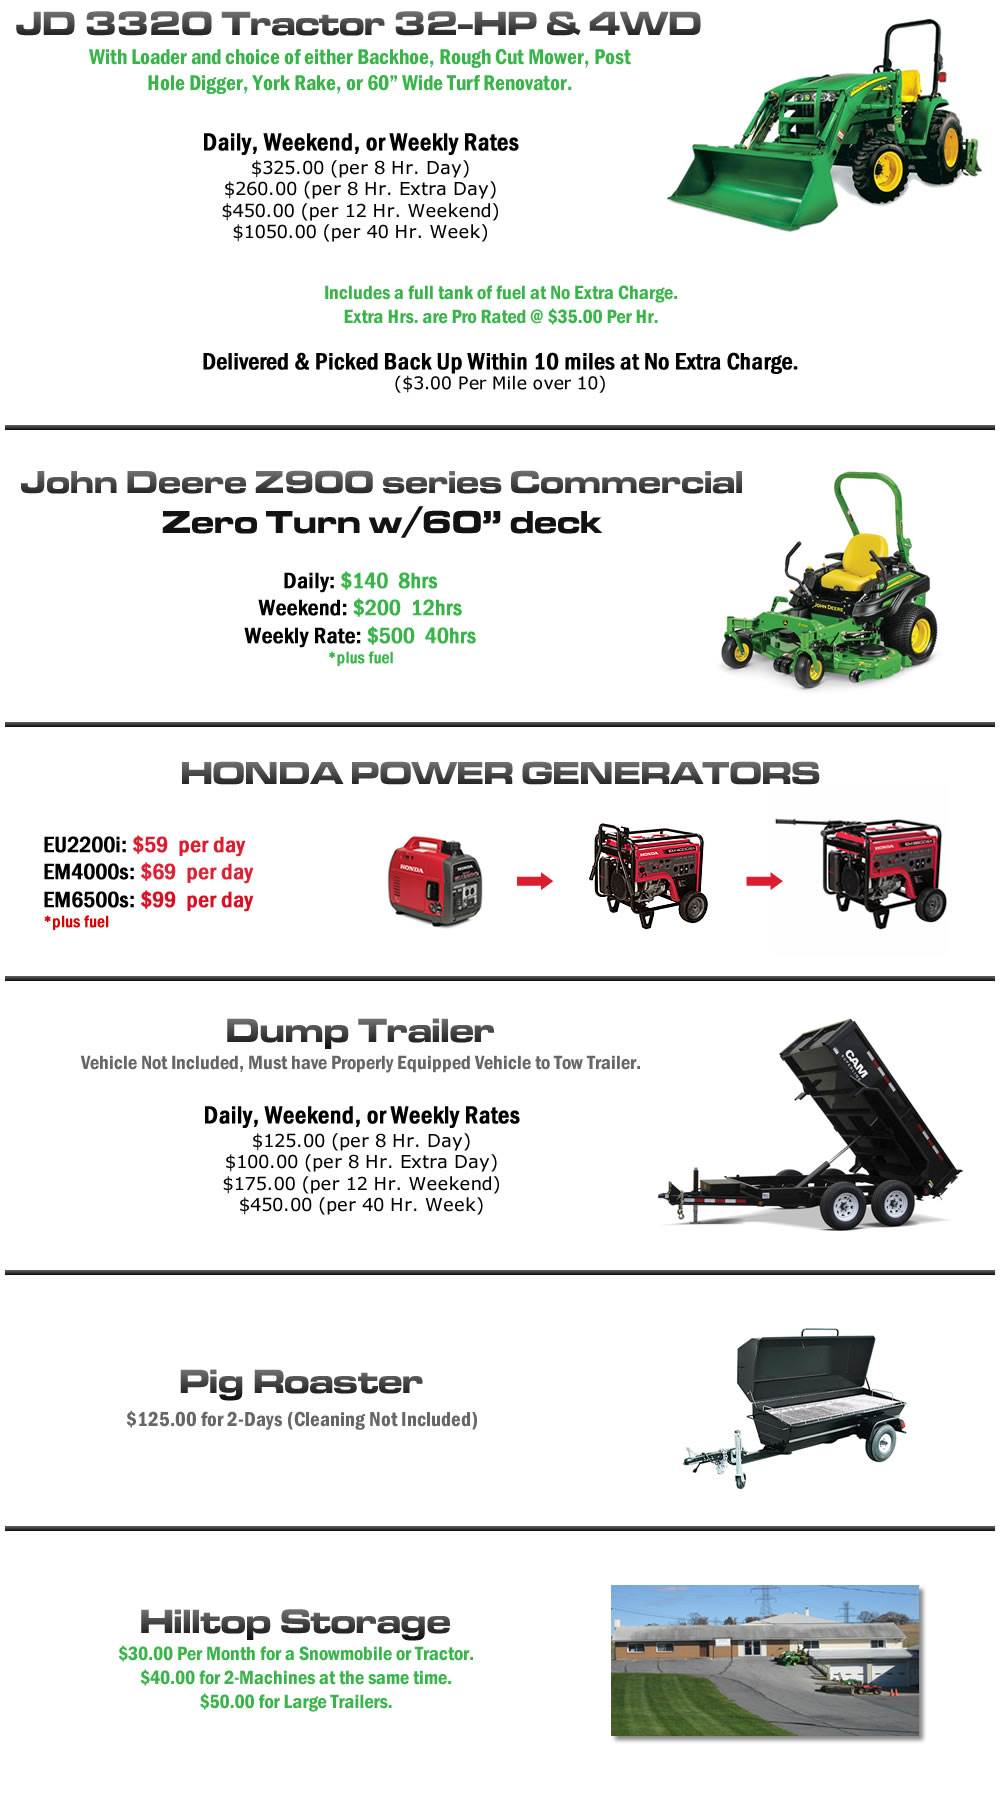 Rental Equipment available in Bangor, PA at Hilltop Rentals